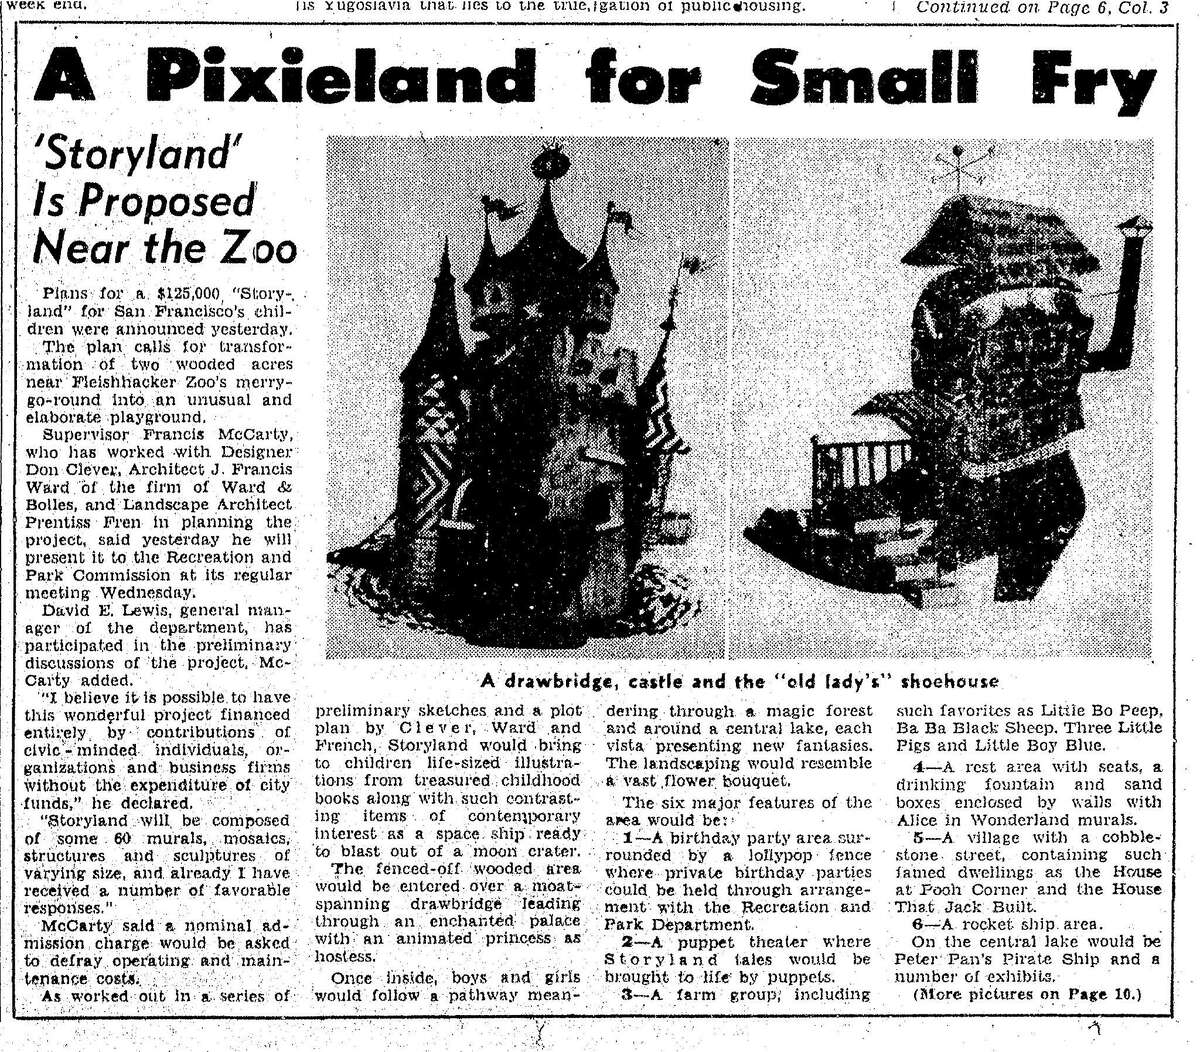 Chronicle article on the proposed amusement park for children at Storyland at Fleischhacker zoo, May 10, 1953